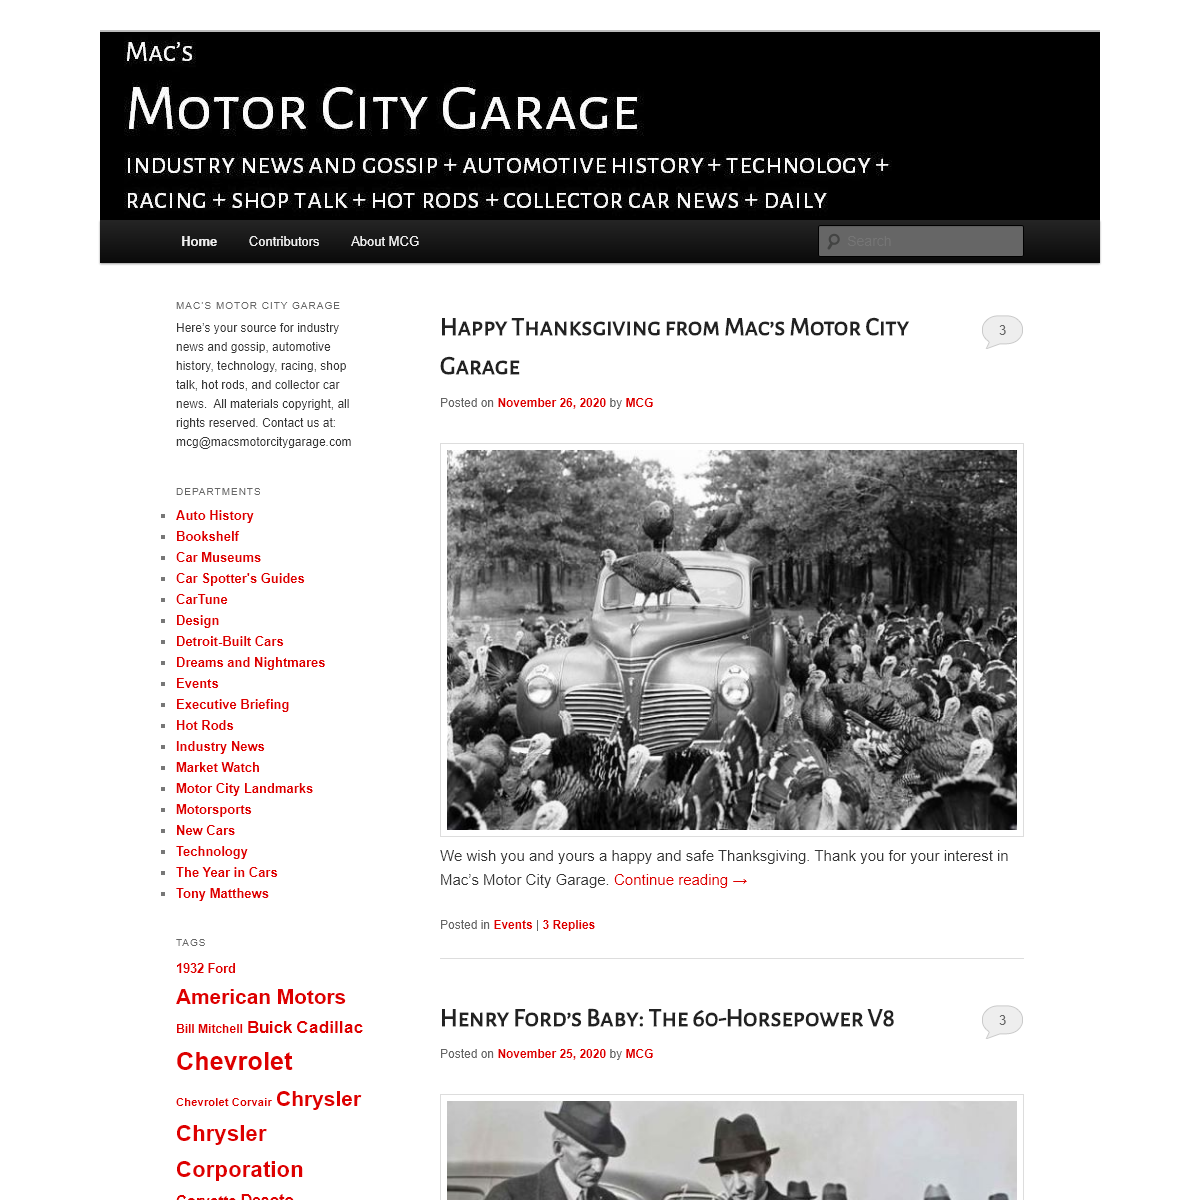 Mac`s Motor City Garage - Auto Industry News and Gossip + Racing + Automotive History + Technology + Shop Lore + Hot Rods + Coll